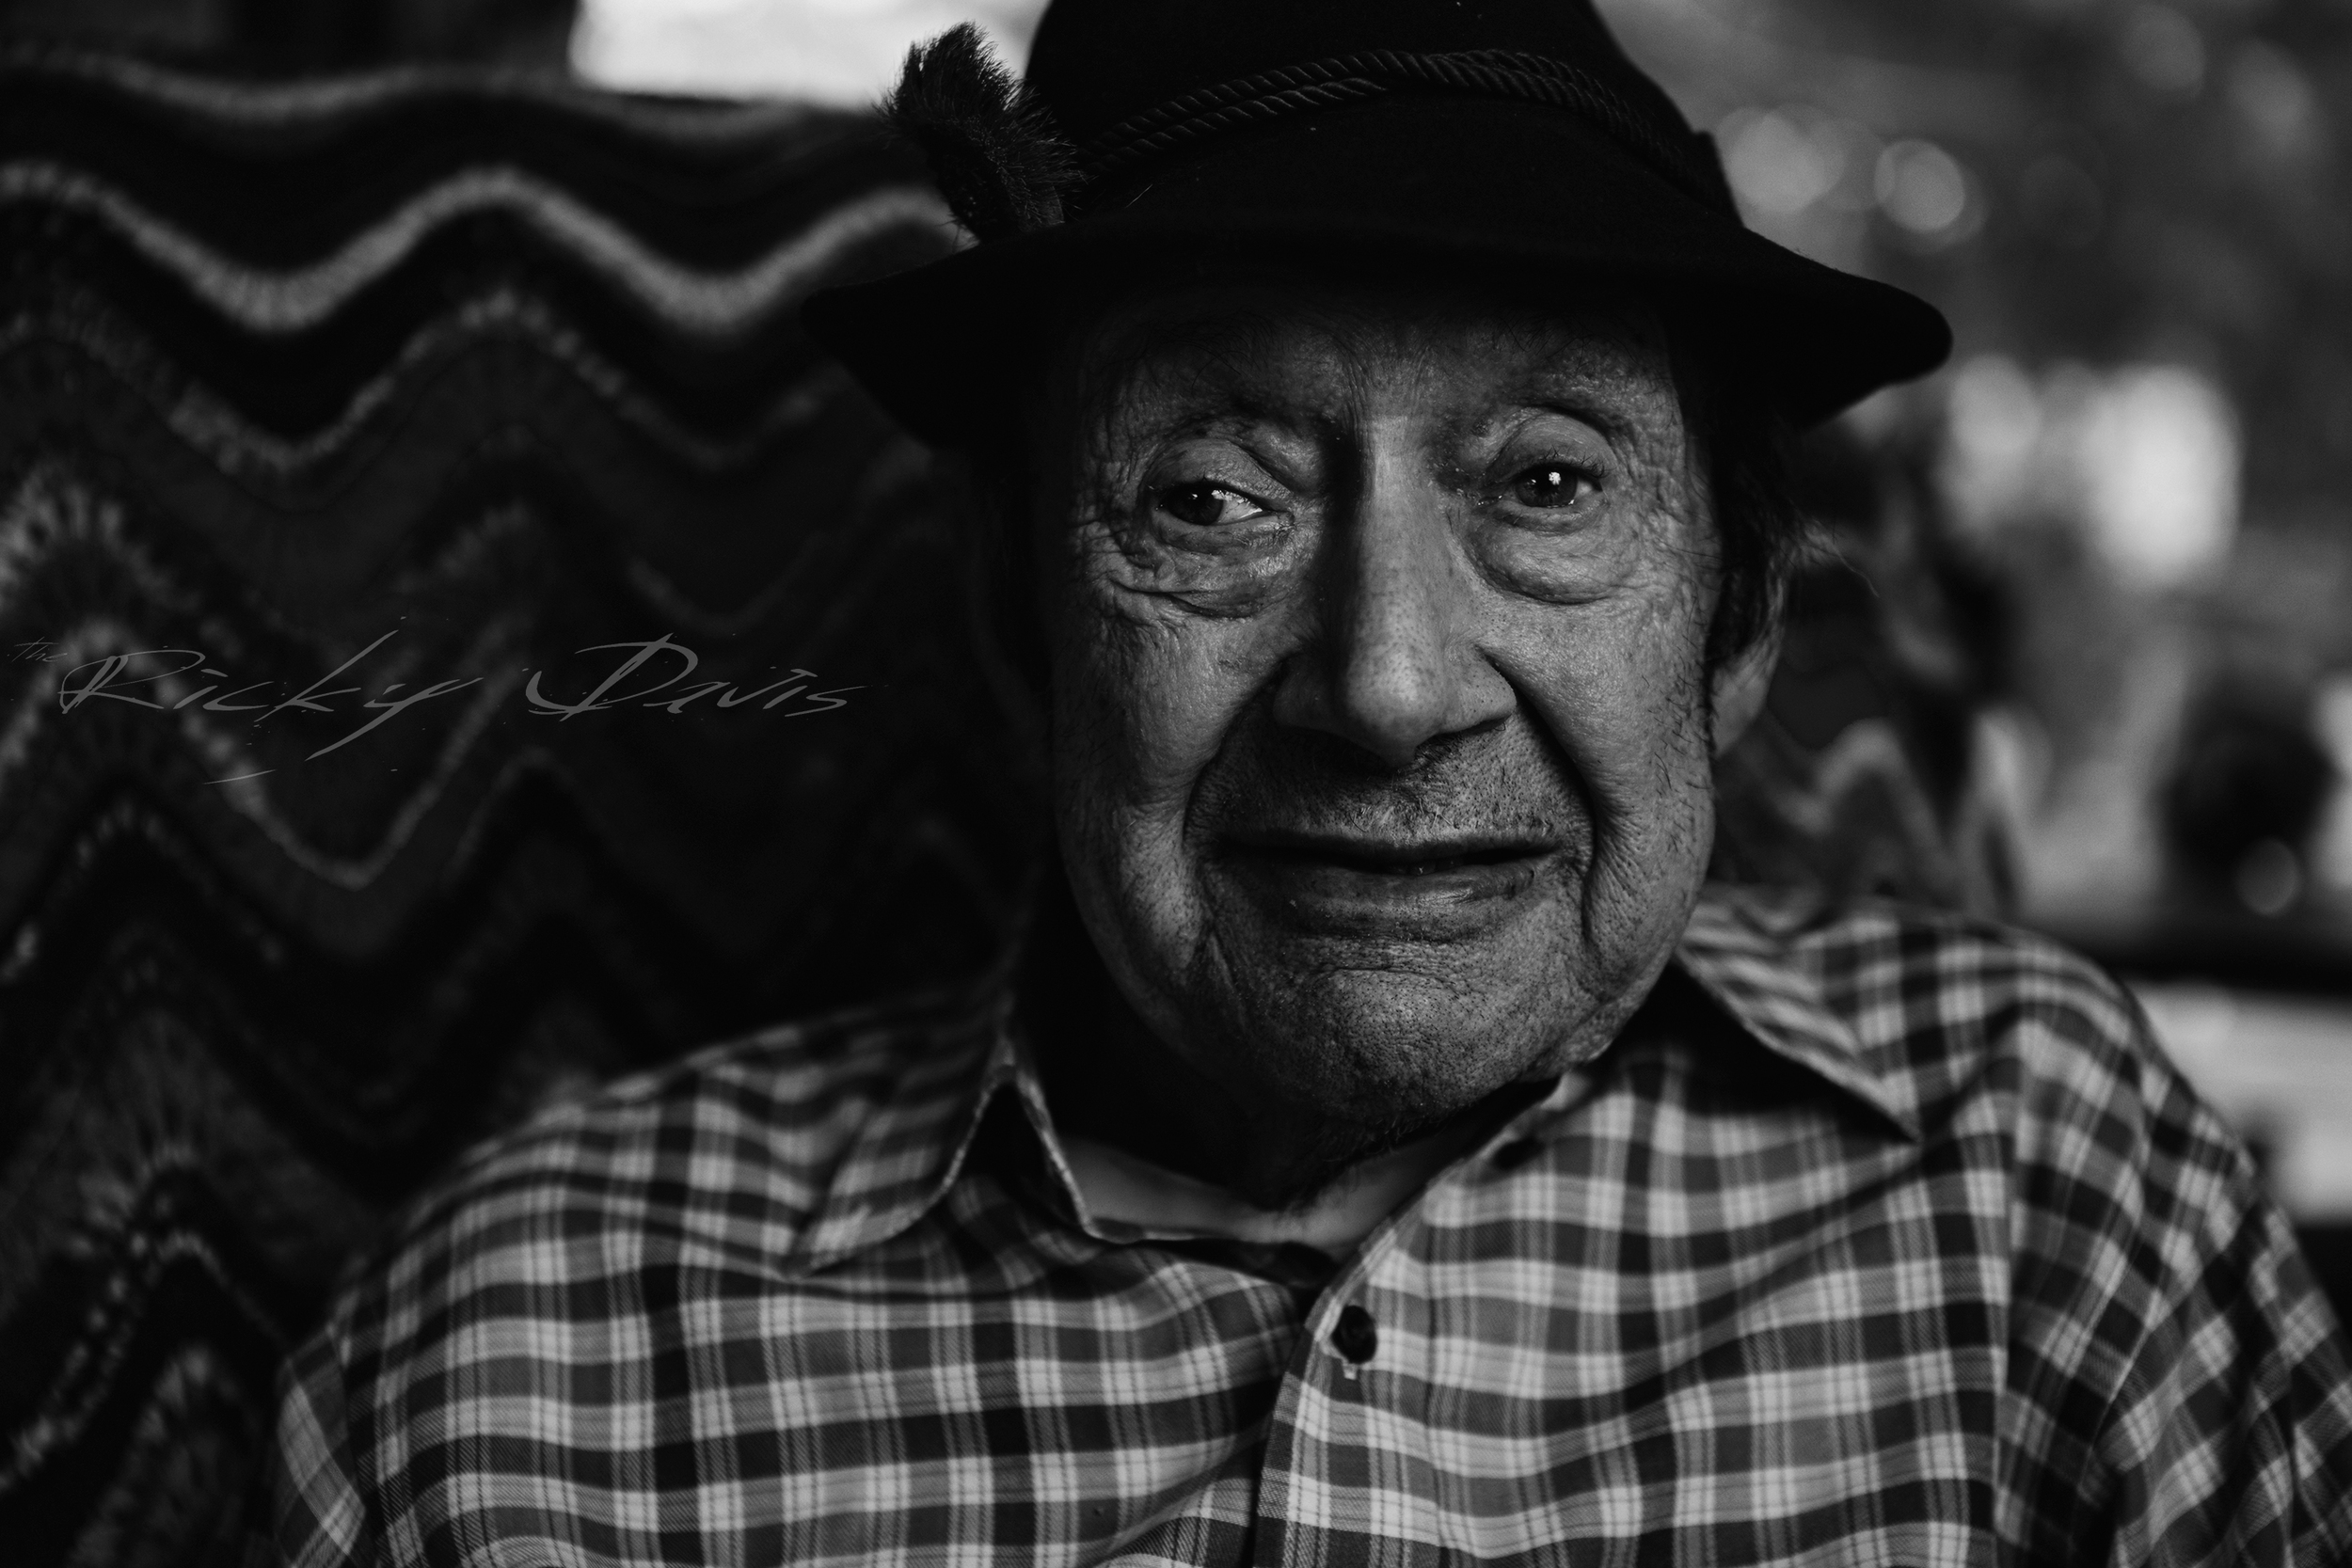 WWII Artilleryman - Pvt Ralph Davis - Photographer Ricky Davis - Photo taken with Canon 6D.